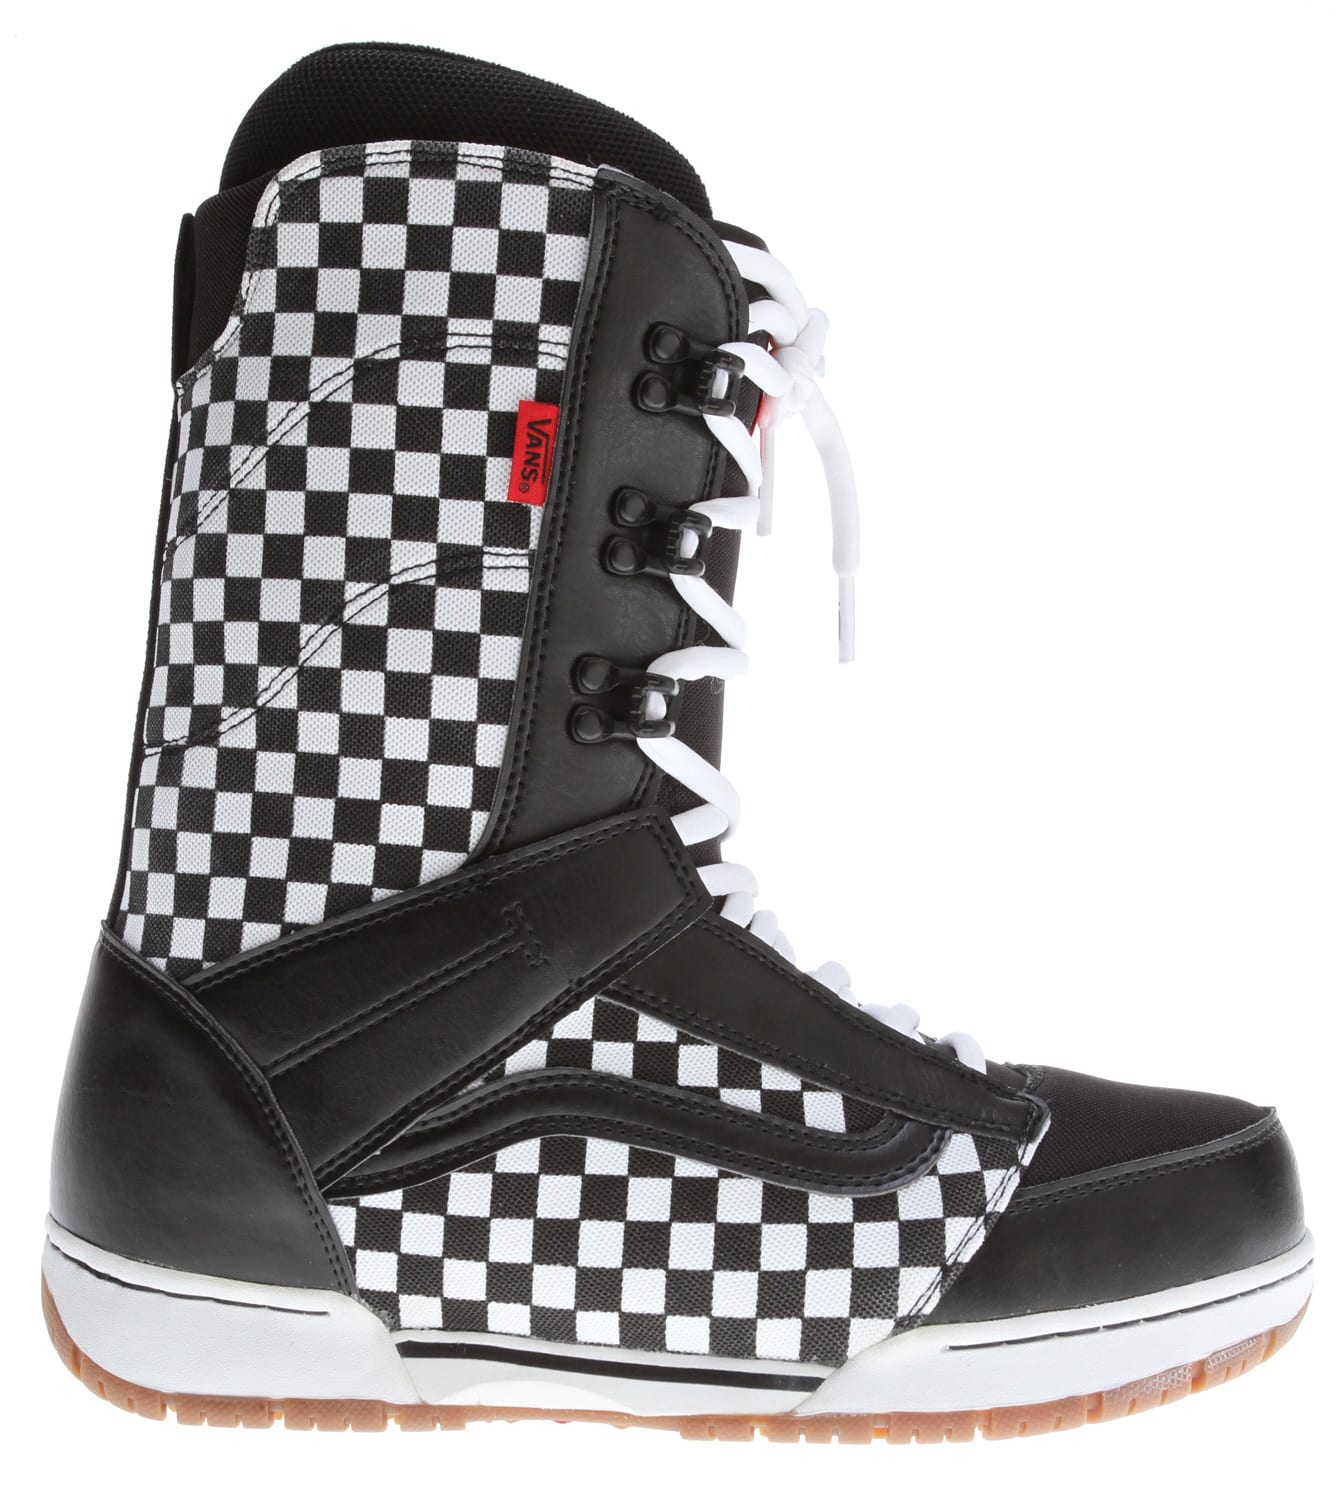 Vans Mantra Snowboard Boots Black/Checker - Men's